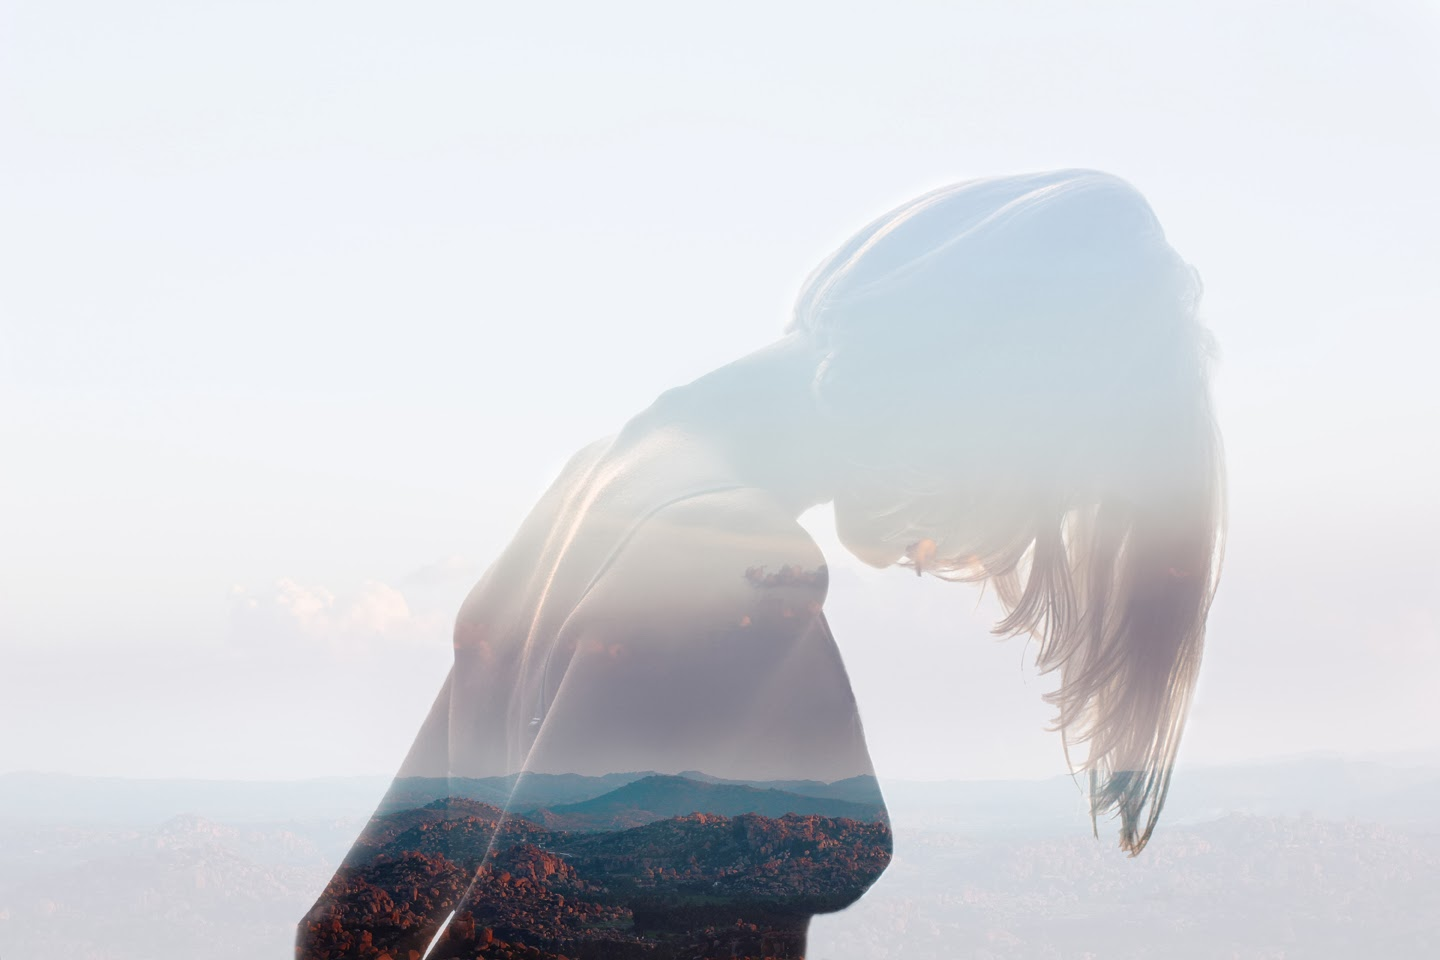 Double and multiple exposure in photography, Insideout Project, Wanderlust, double exposure girl with mountains inside